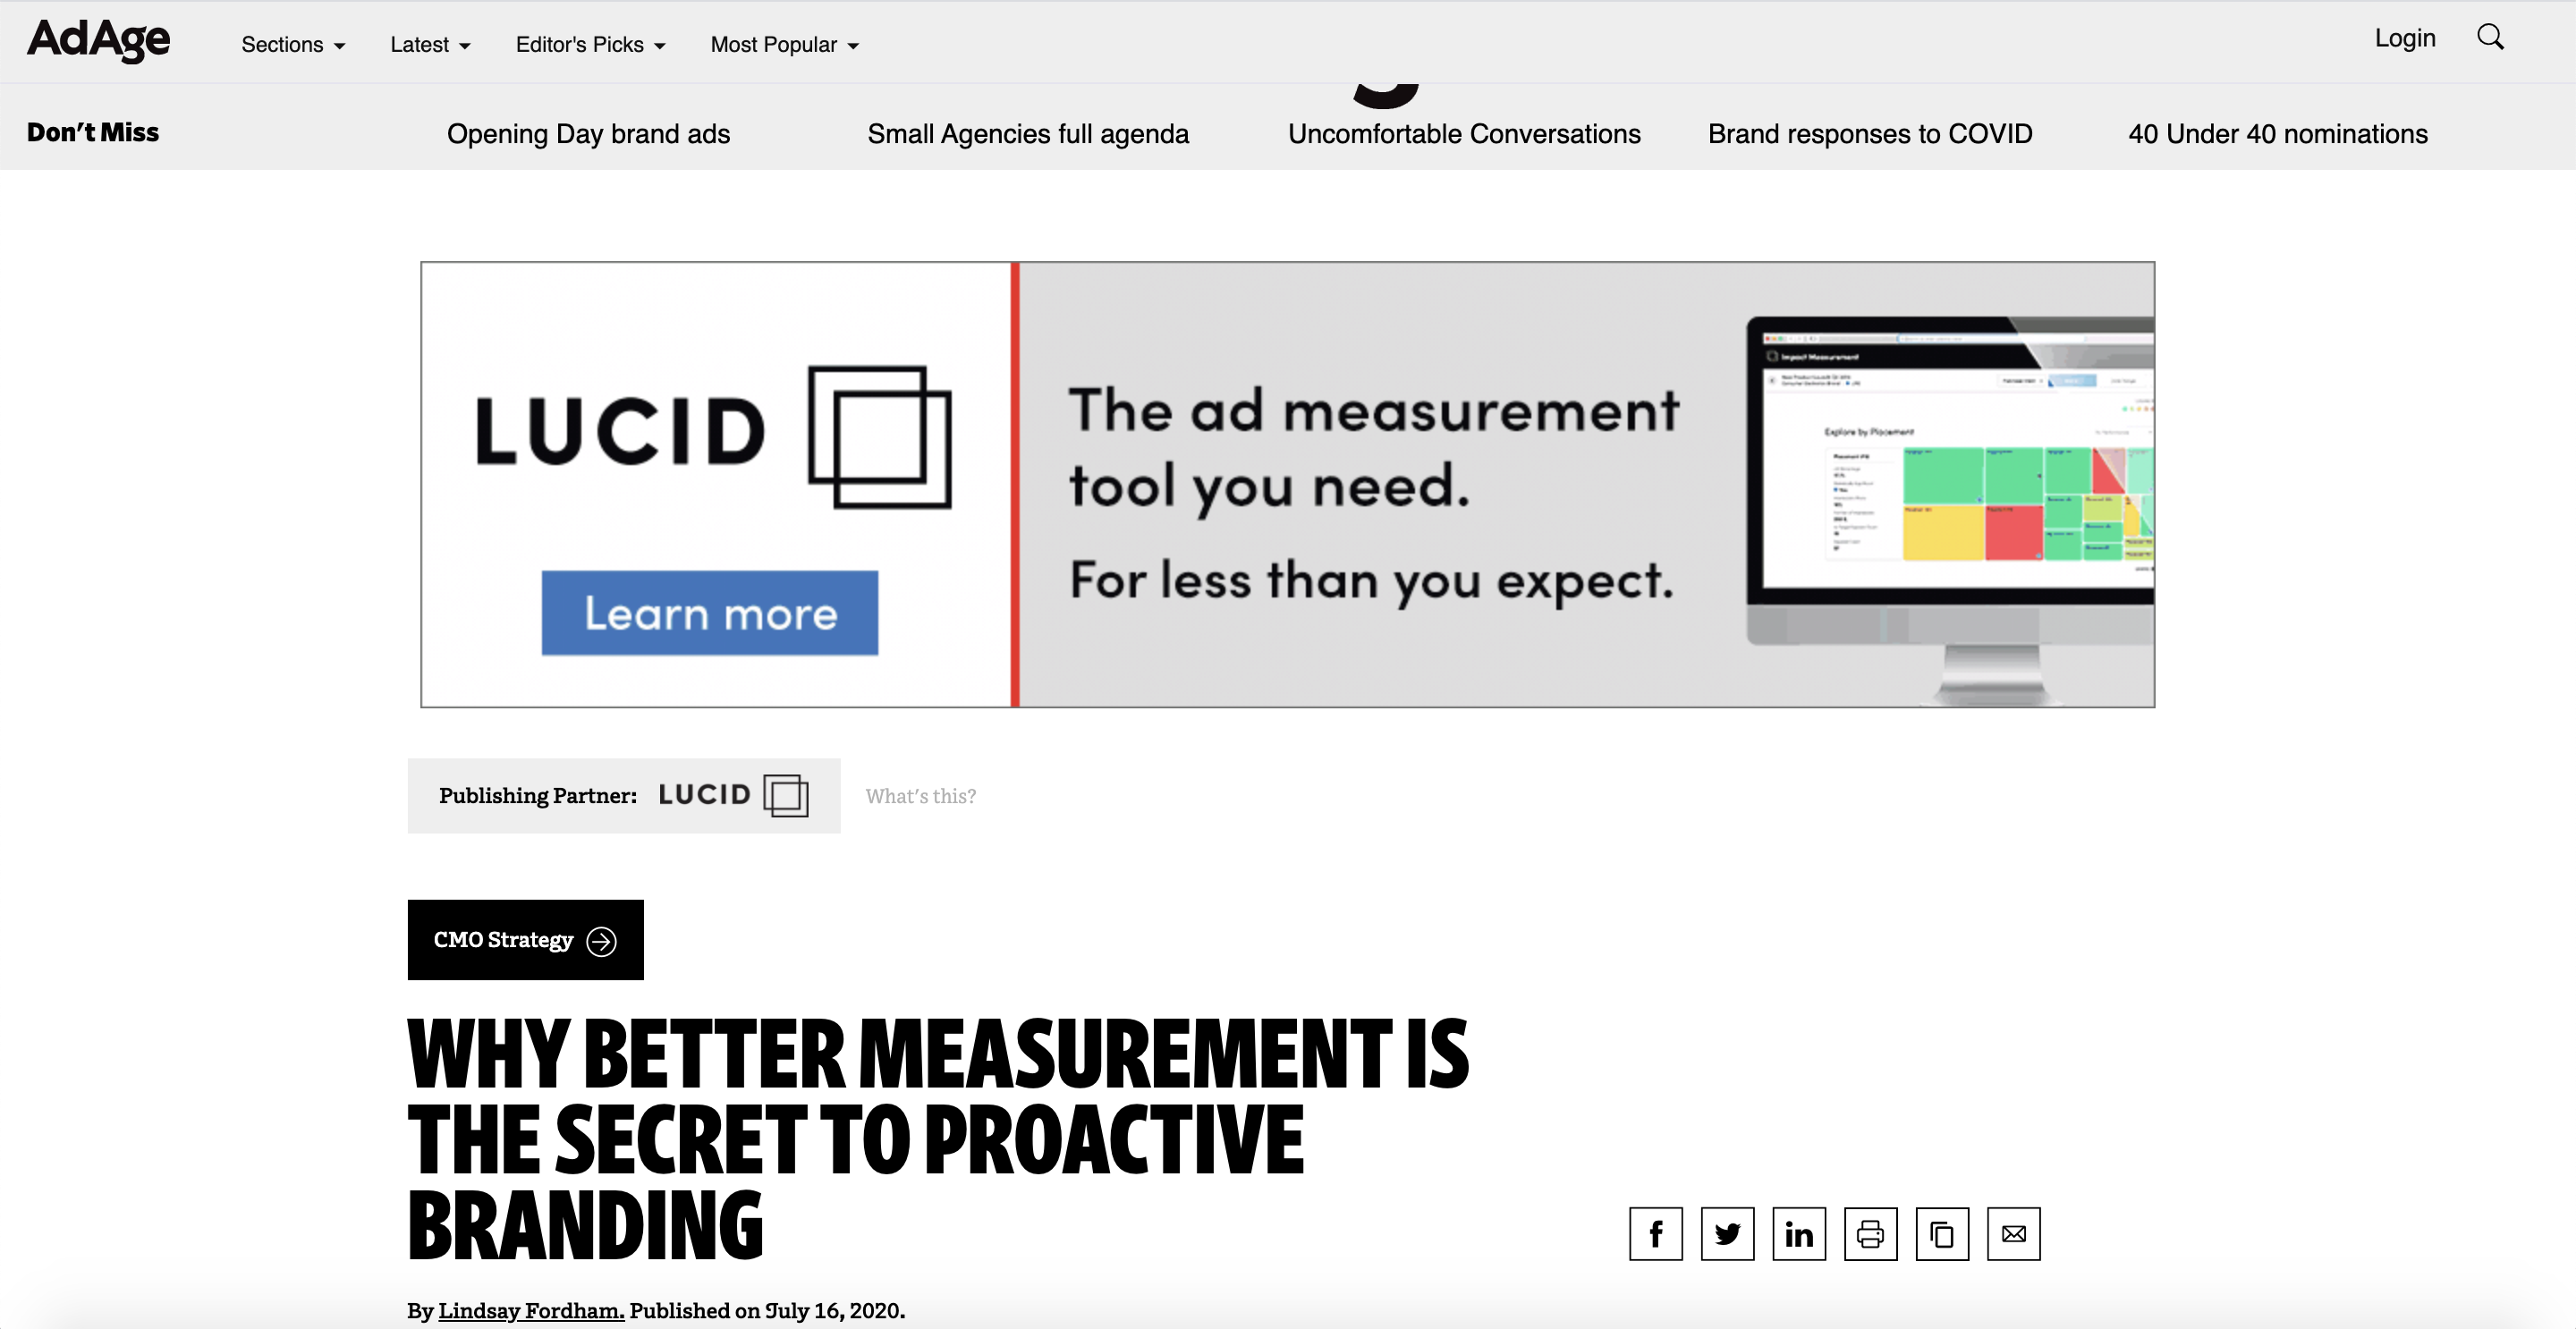 Branded content by Lucid on Adage